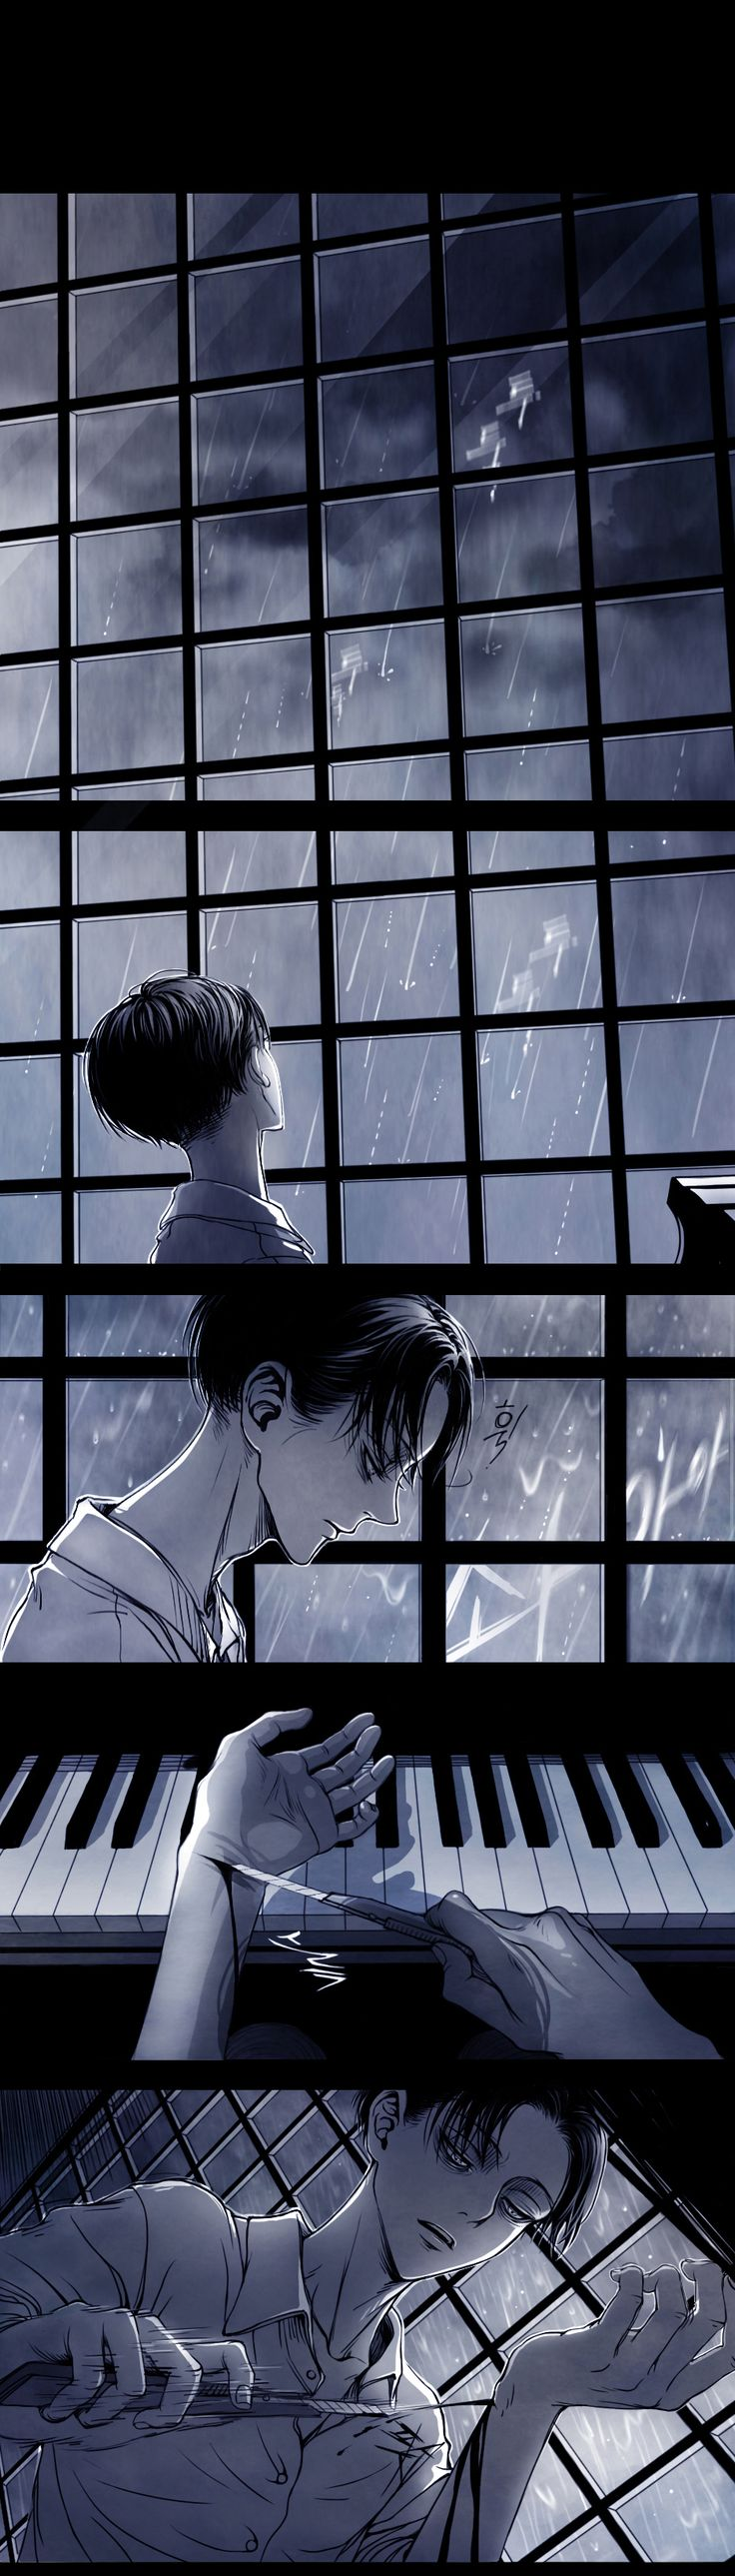 The Piano by shul (Part 1)- *TW Cutting and Suicide* this is a disturbing comic. Not a Levi+Eren shipper but there's something compelling about this...